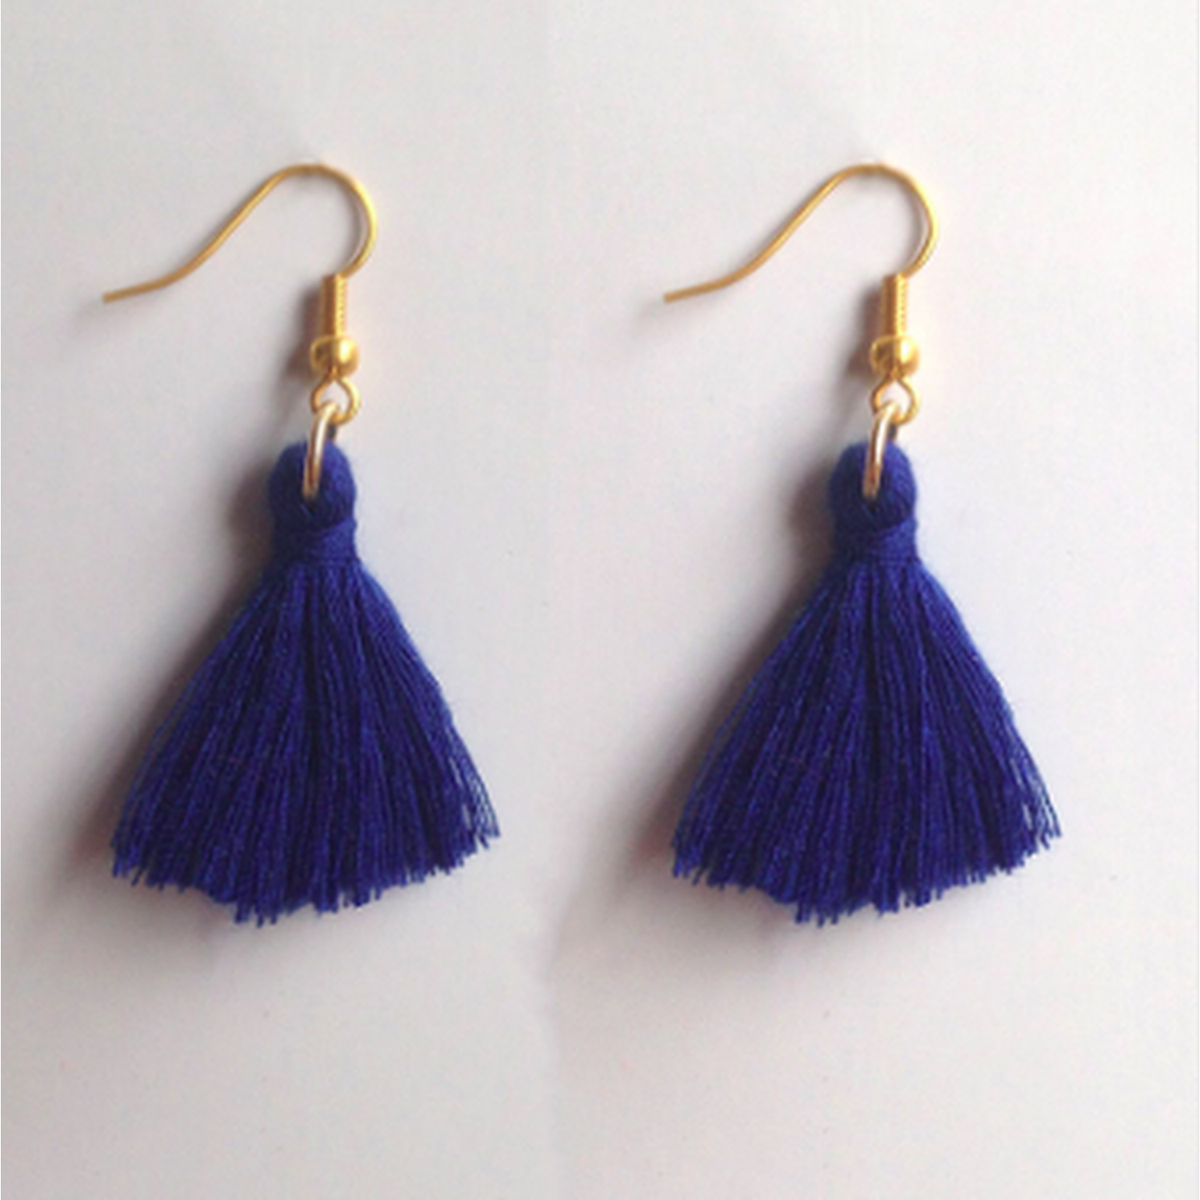 Drop Top Earrings - Navy Blue